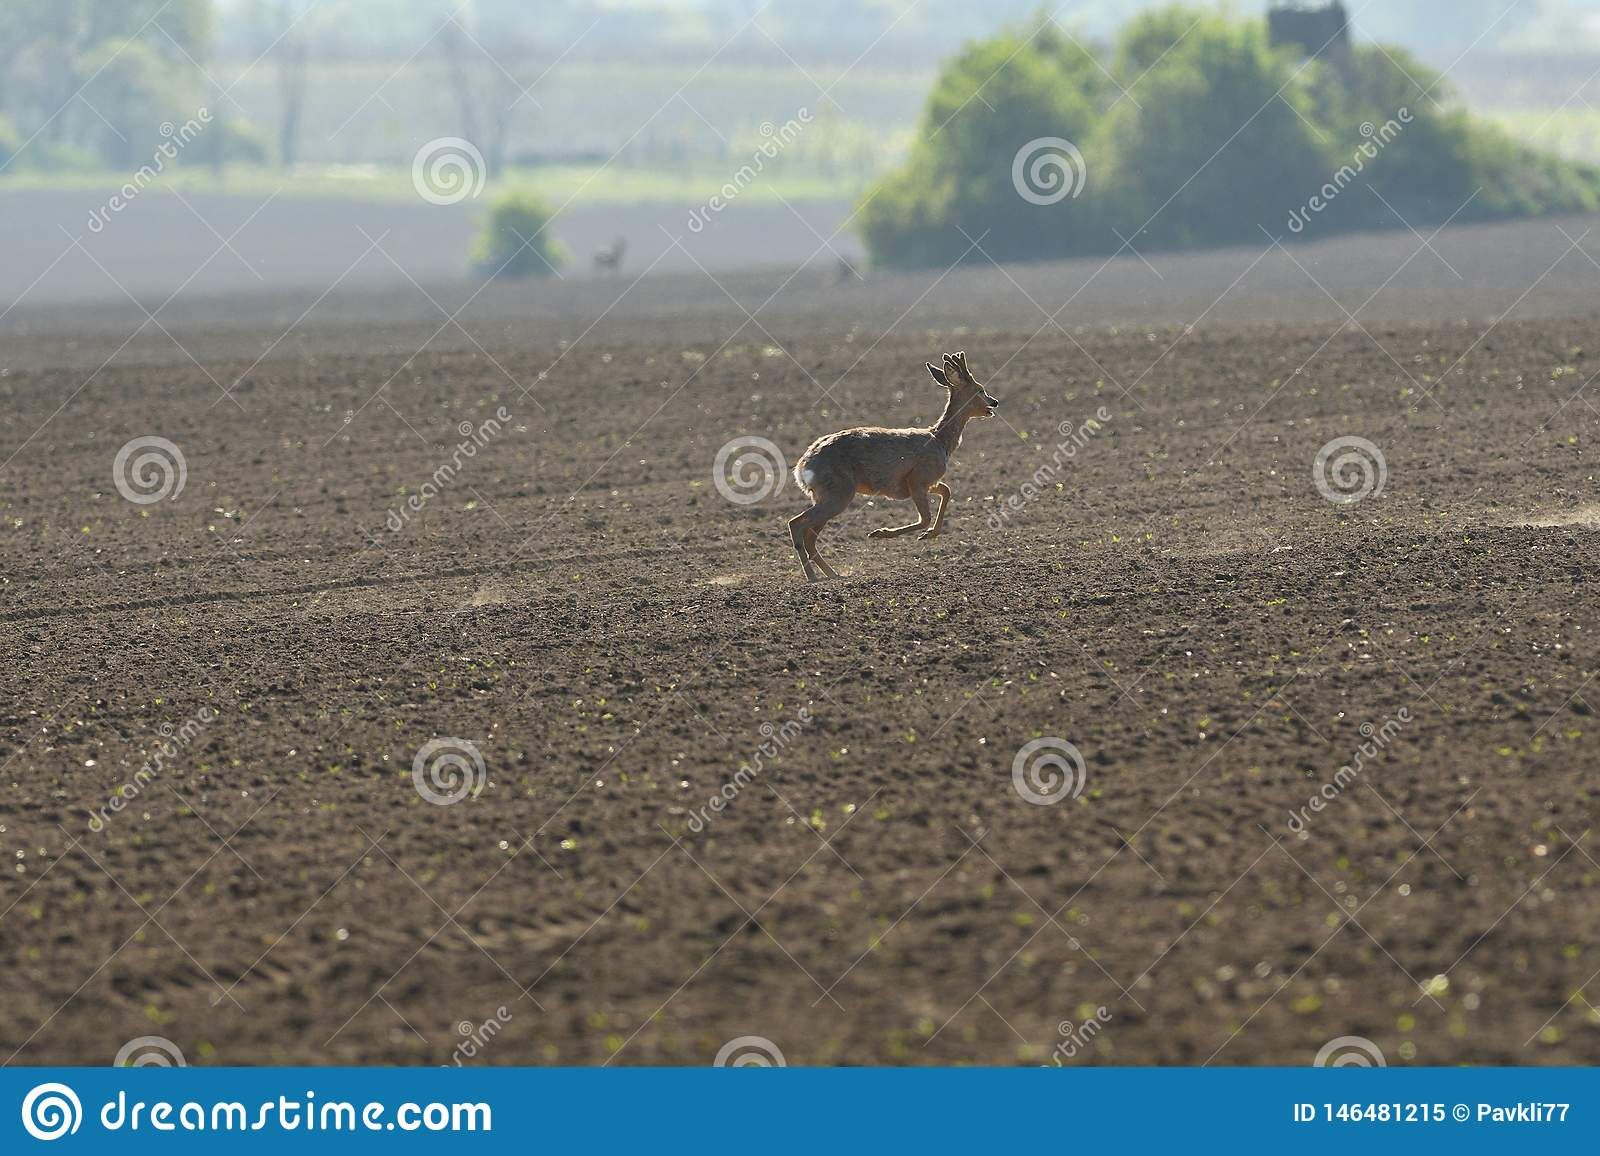 Herd of roe deer running through a farm field in spring